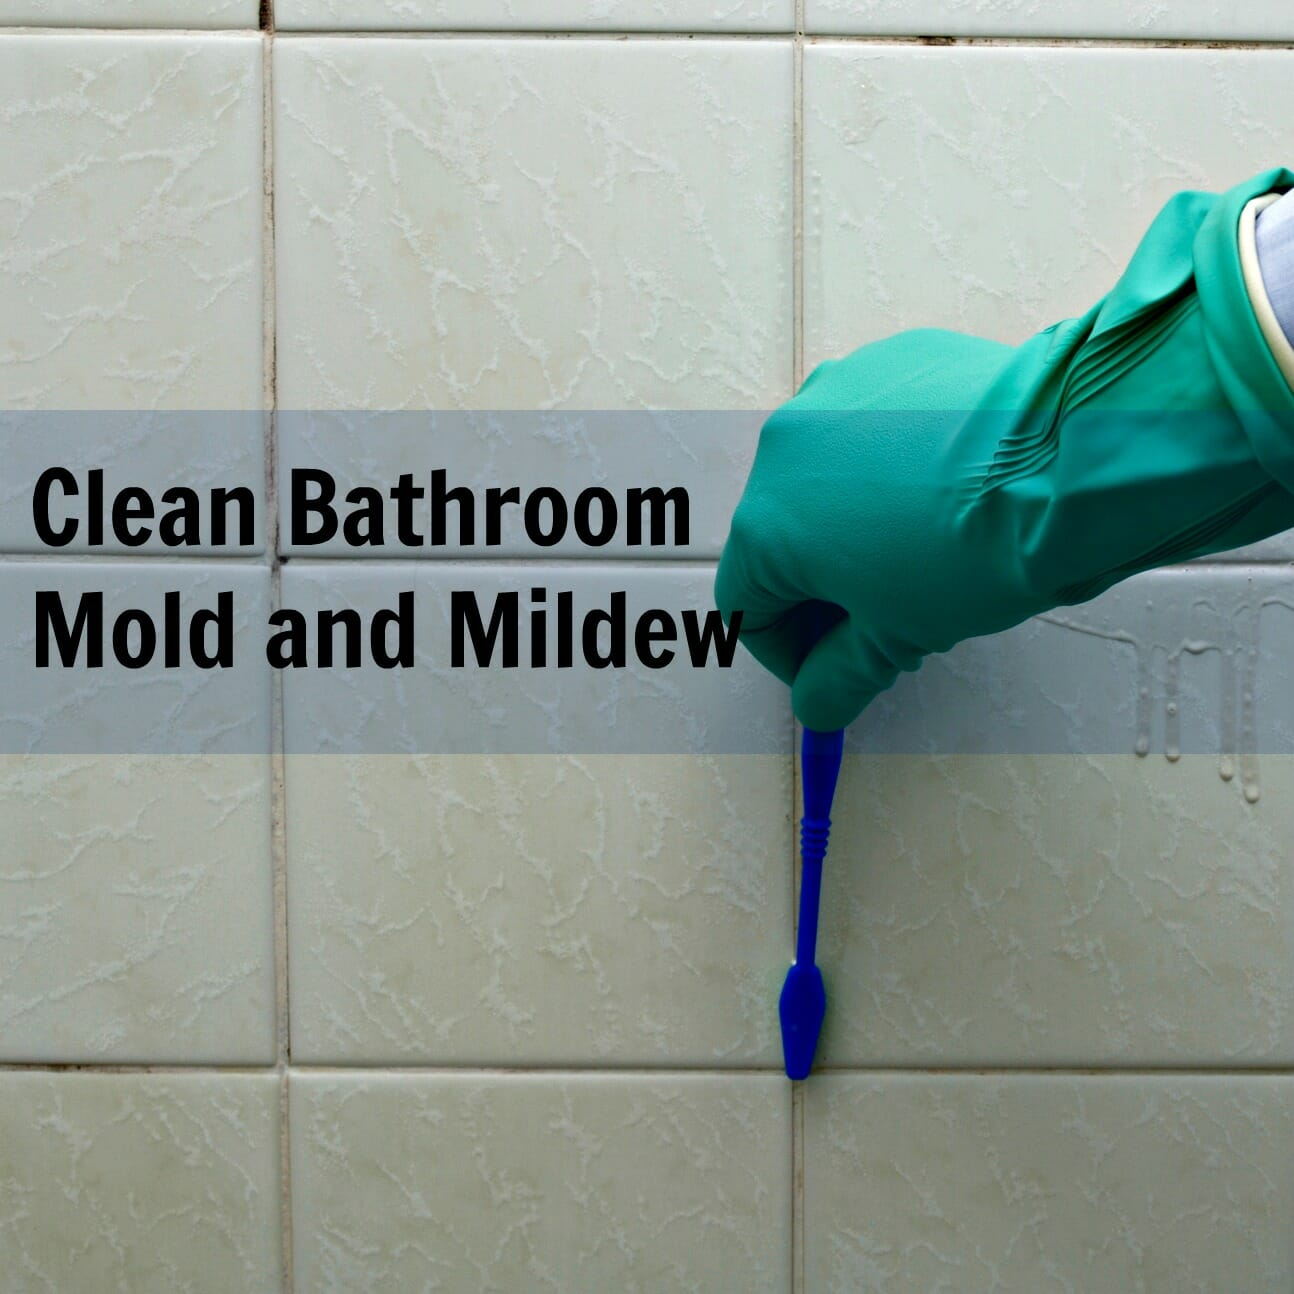 What cleans mold and mildew in shower